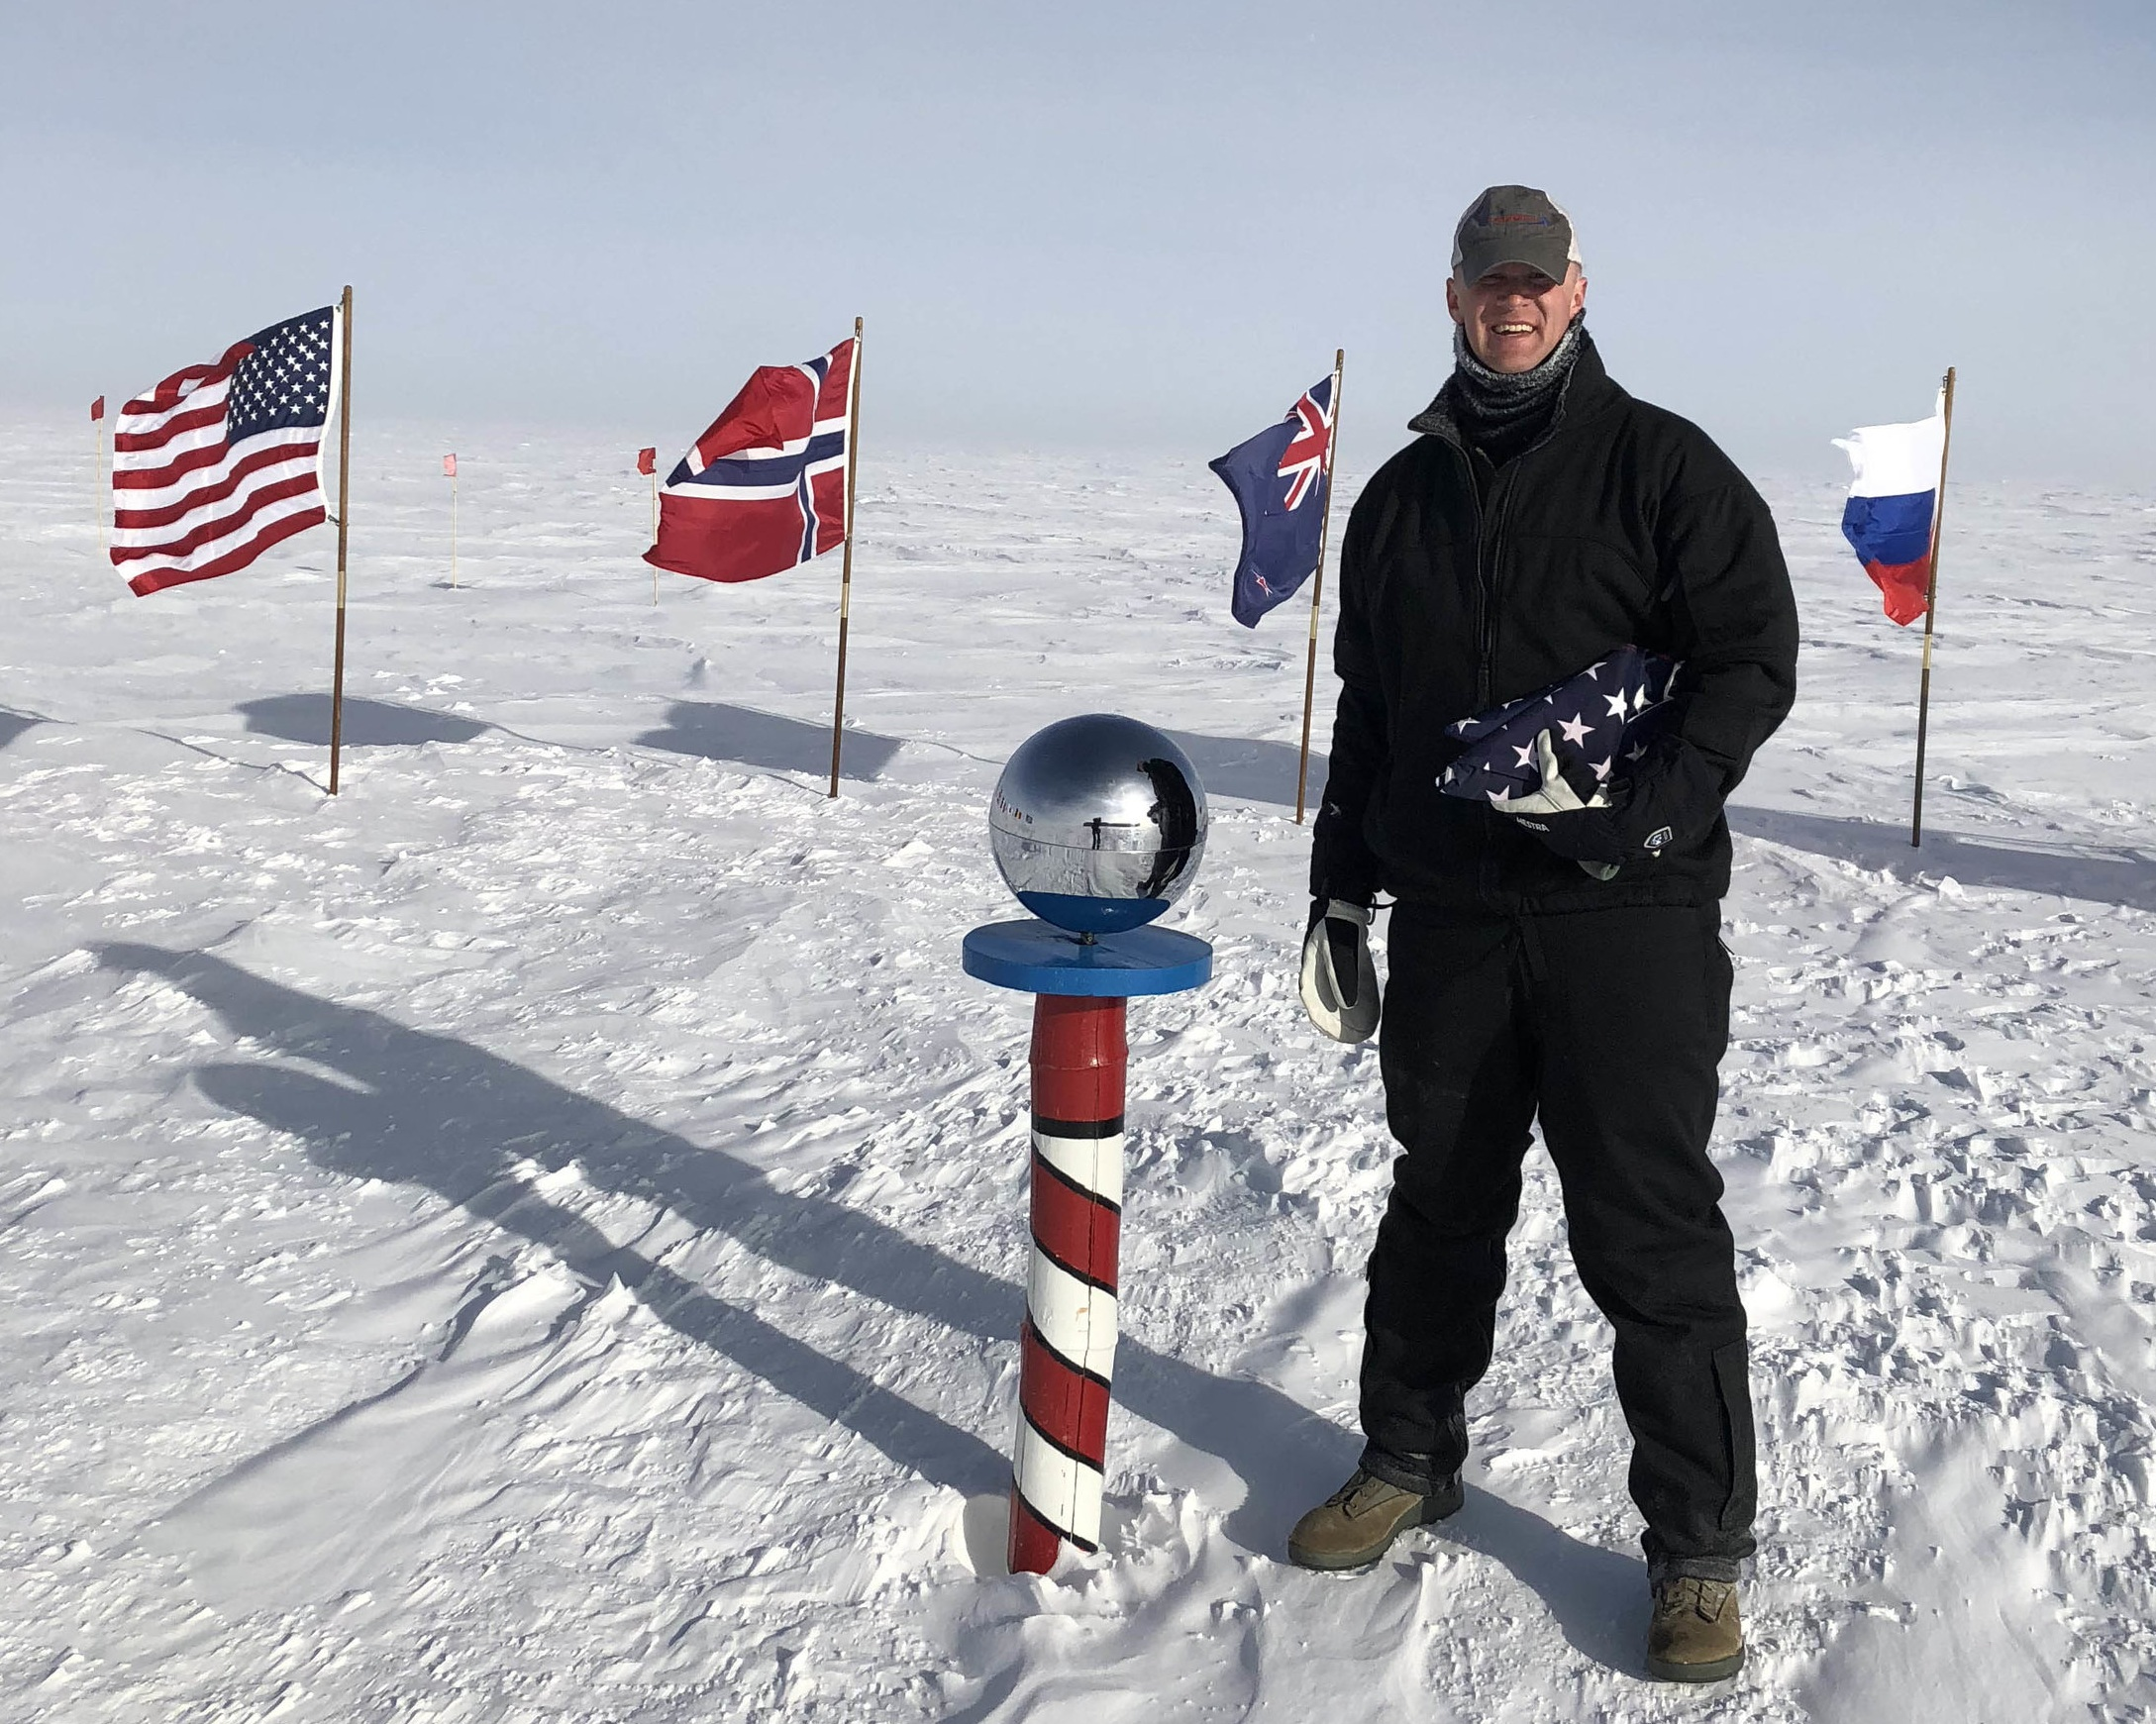 Matt at the South Pole preparing to aeromedically evacuate a patient who had high altitude pulmonary edema (HAPE) and was not stable enough to stay at South Pole Station. He is holding the American Flag that he flies in the backs of the aircraft in which he moves patients. This flag has traveled over the skies of southwest Asia, north Africa, South America, North America, the islands of the Pacific and Antarctica.